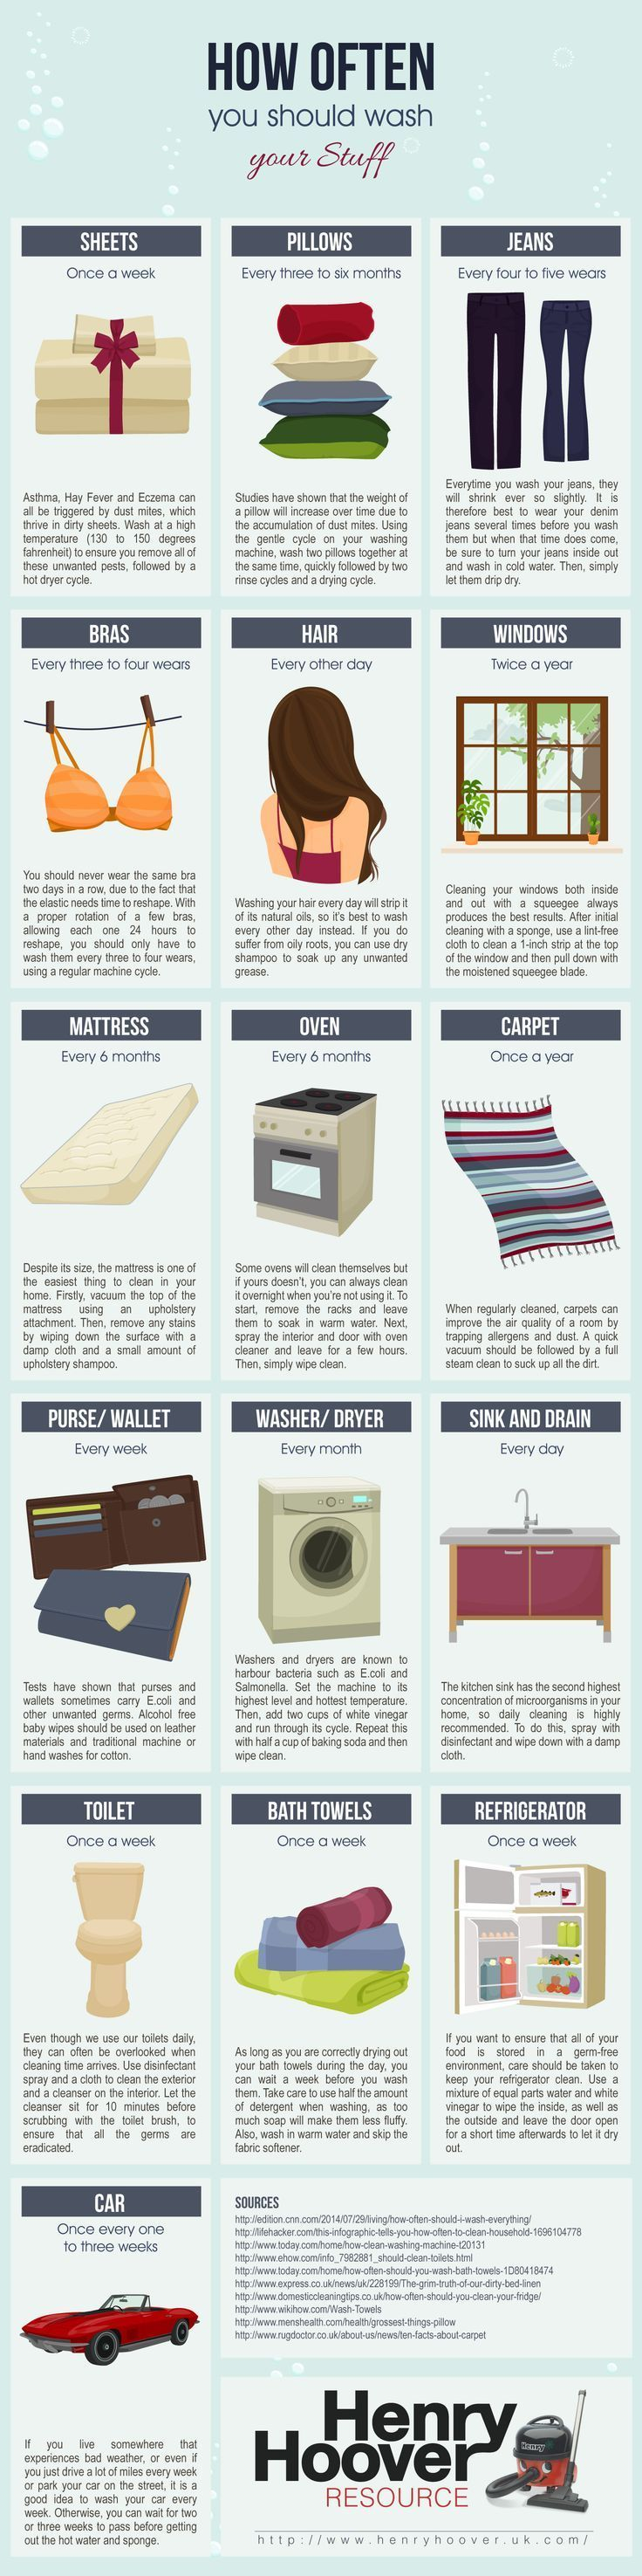 Here's How Often You Should Clean Your Stuff [Infographic]